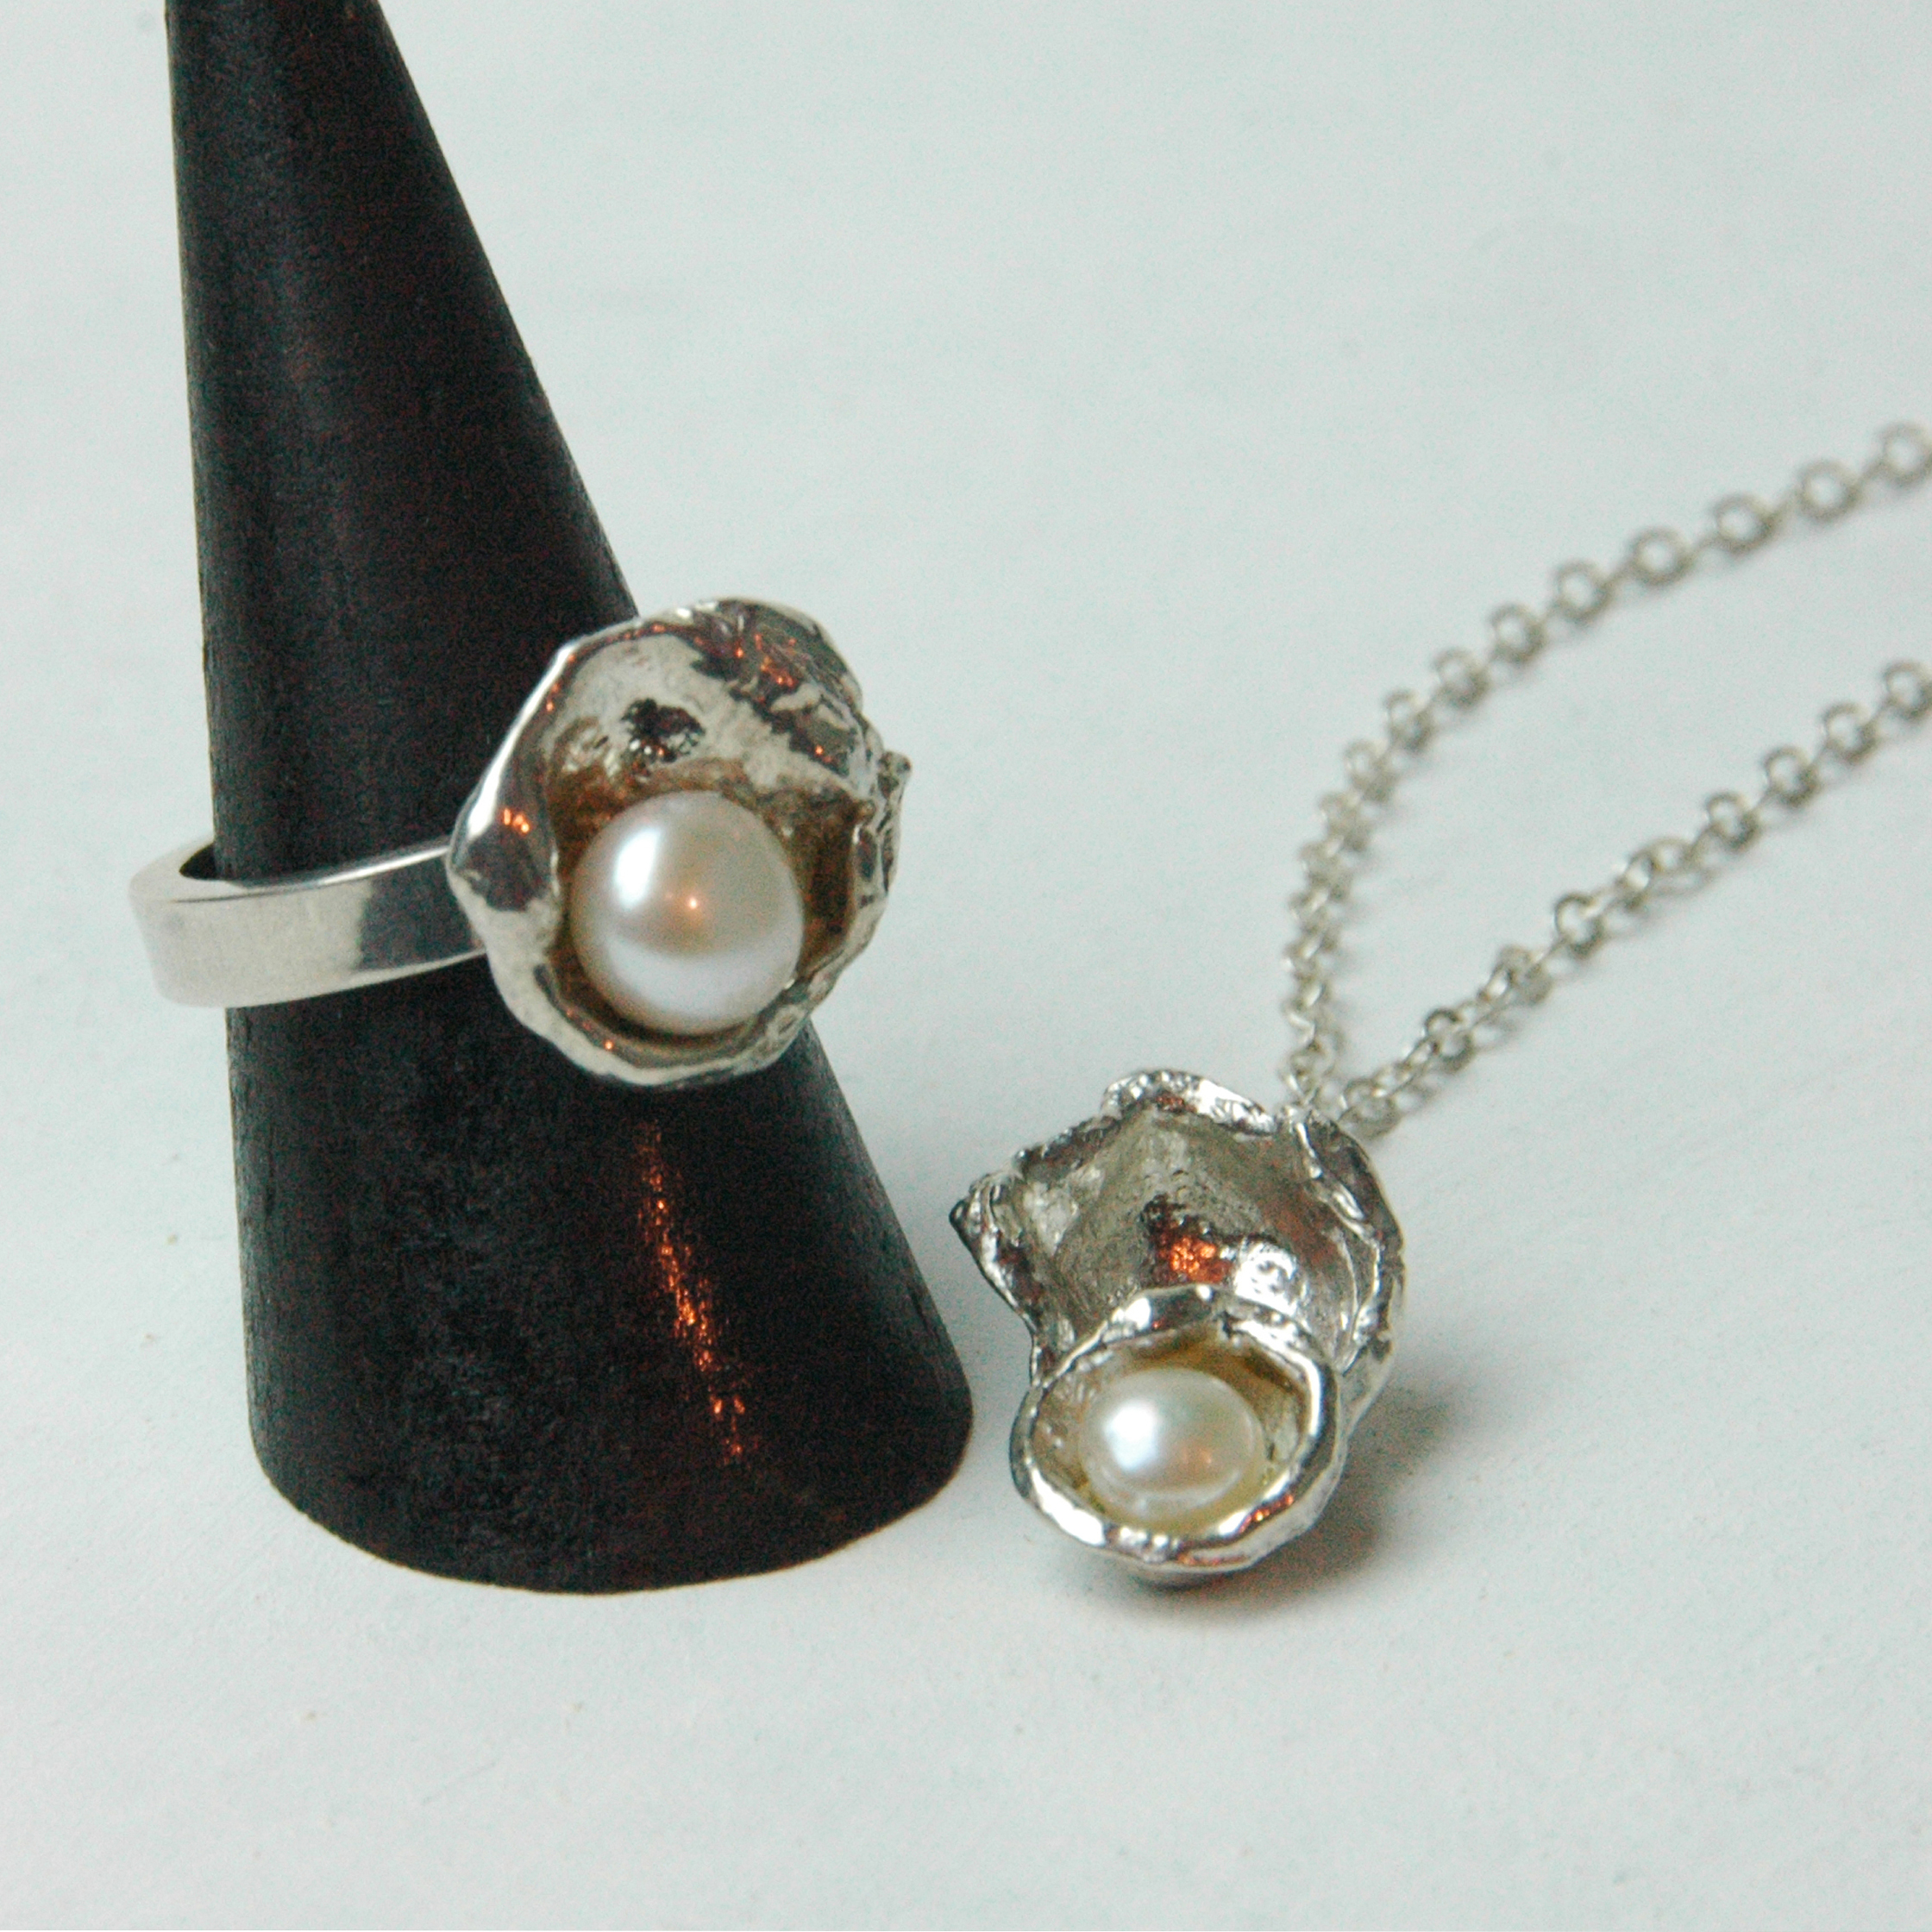 Sterling Silver Watercast Ring and Pendant with White Freshwater Pearls n.jpg